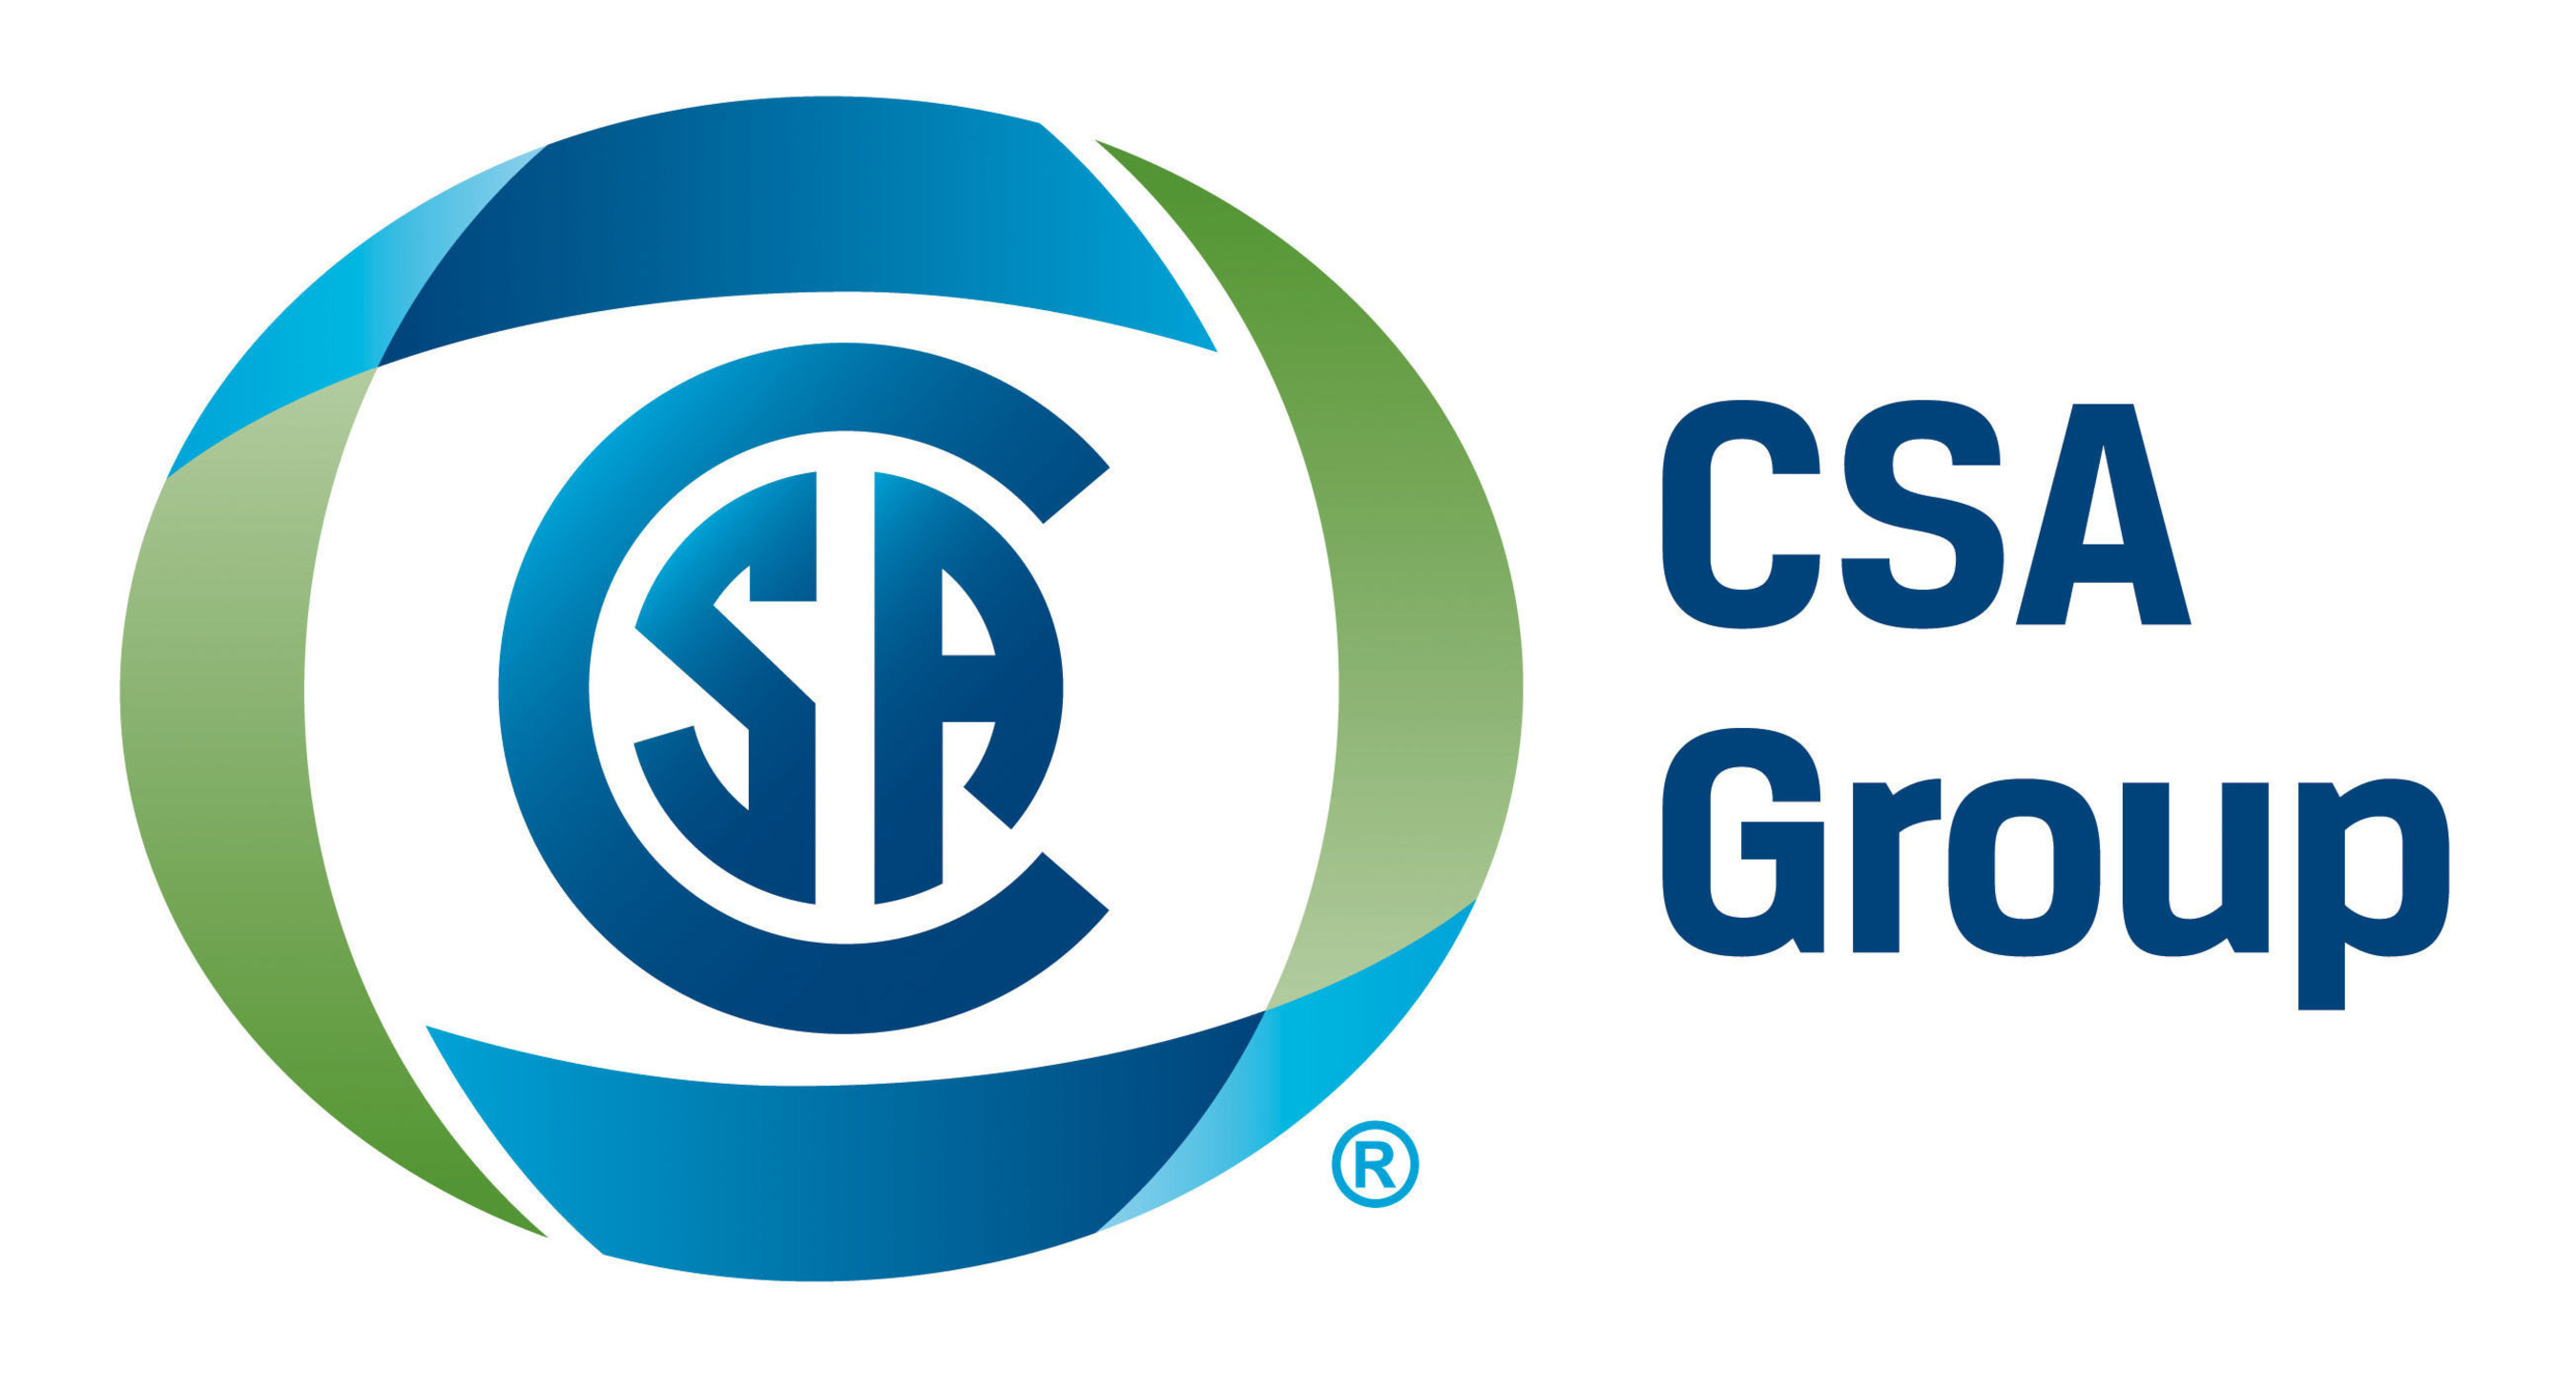 CSA Group Recognized as Top Employer in Ohio